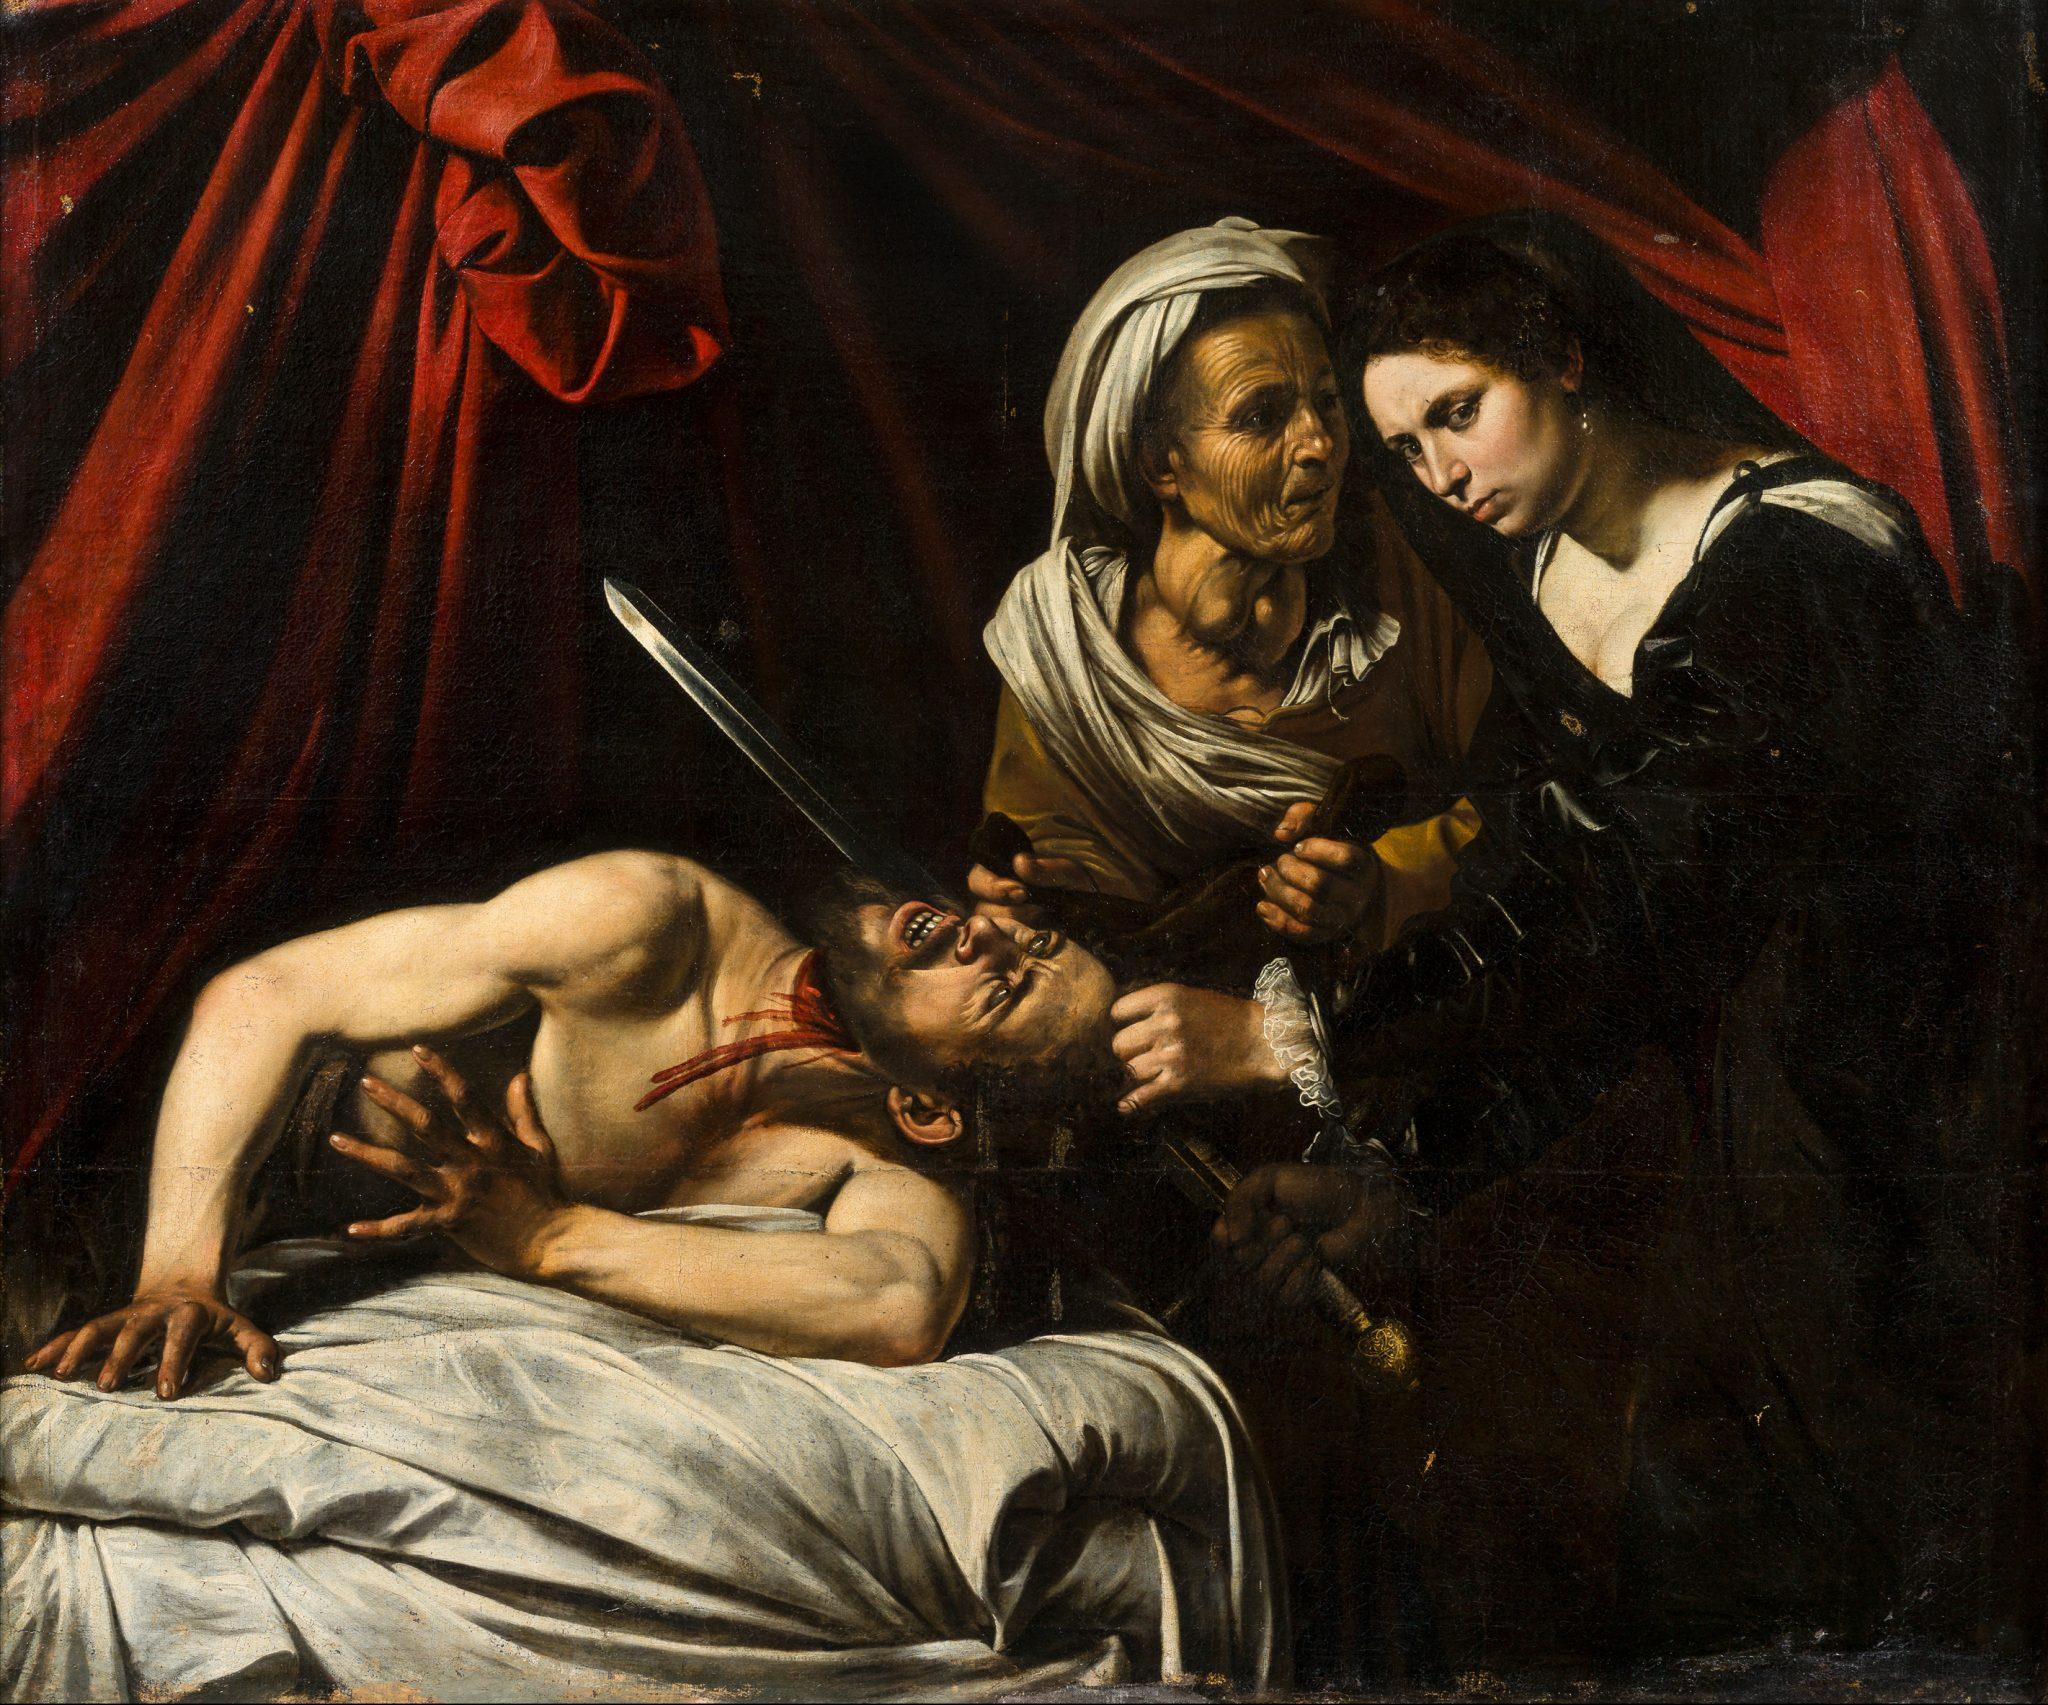 holofernes and caravaggio Great works: judith beheading holofernes (1612-13), artemisia artemisia gentileschi's judith beheading holofernes shows a famous biblical assassination the sword-woman is and became (precociously) one of the most vigorous followers of caravaggio, deploying high-contrast lighting.